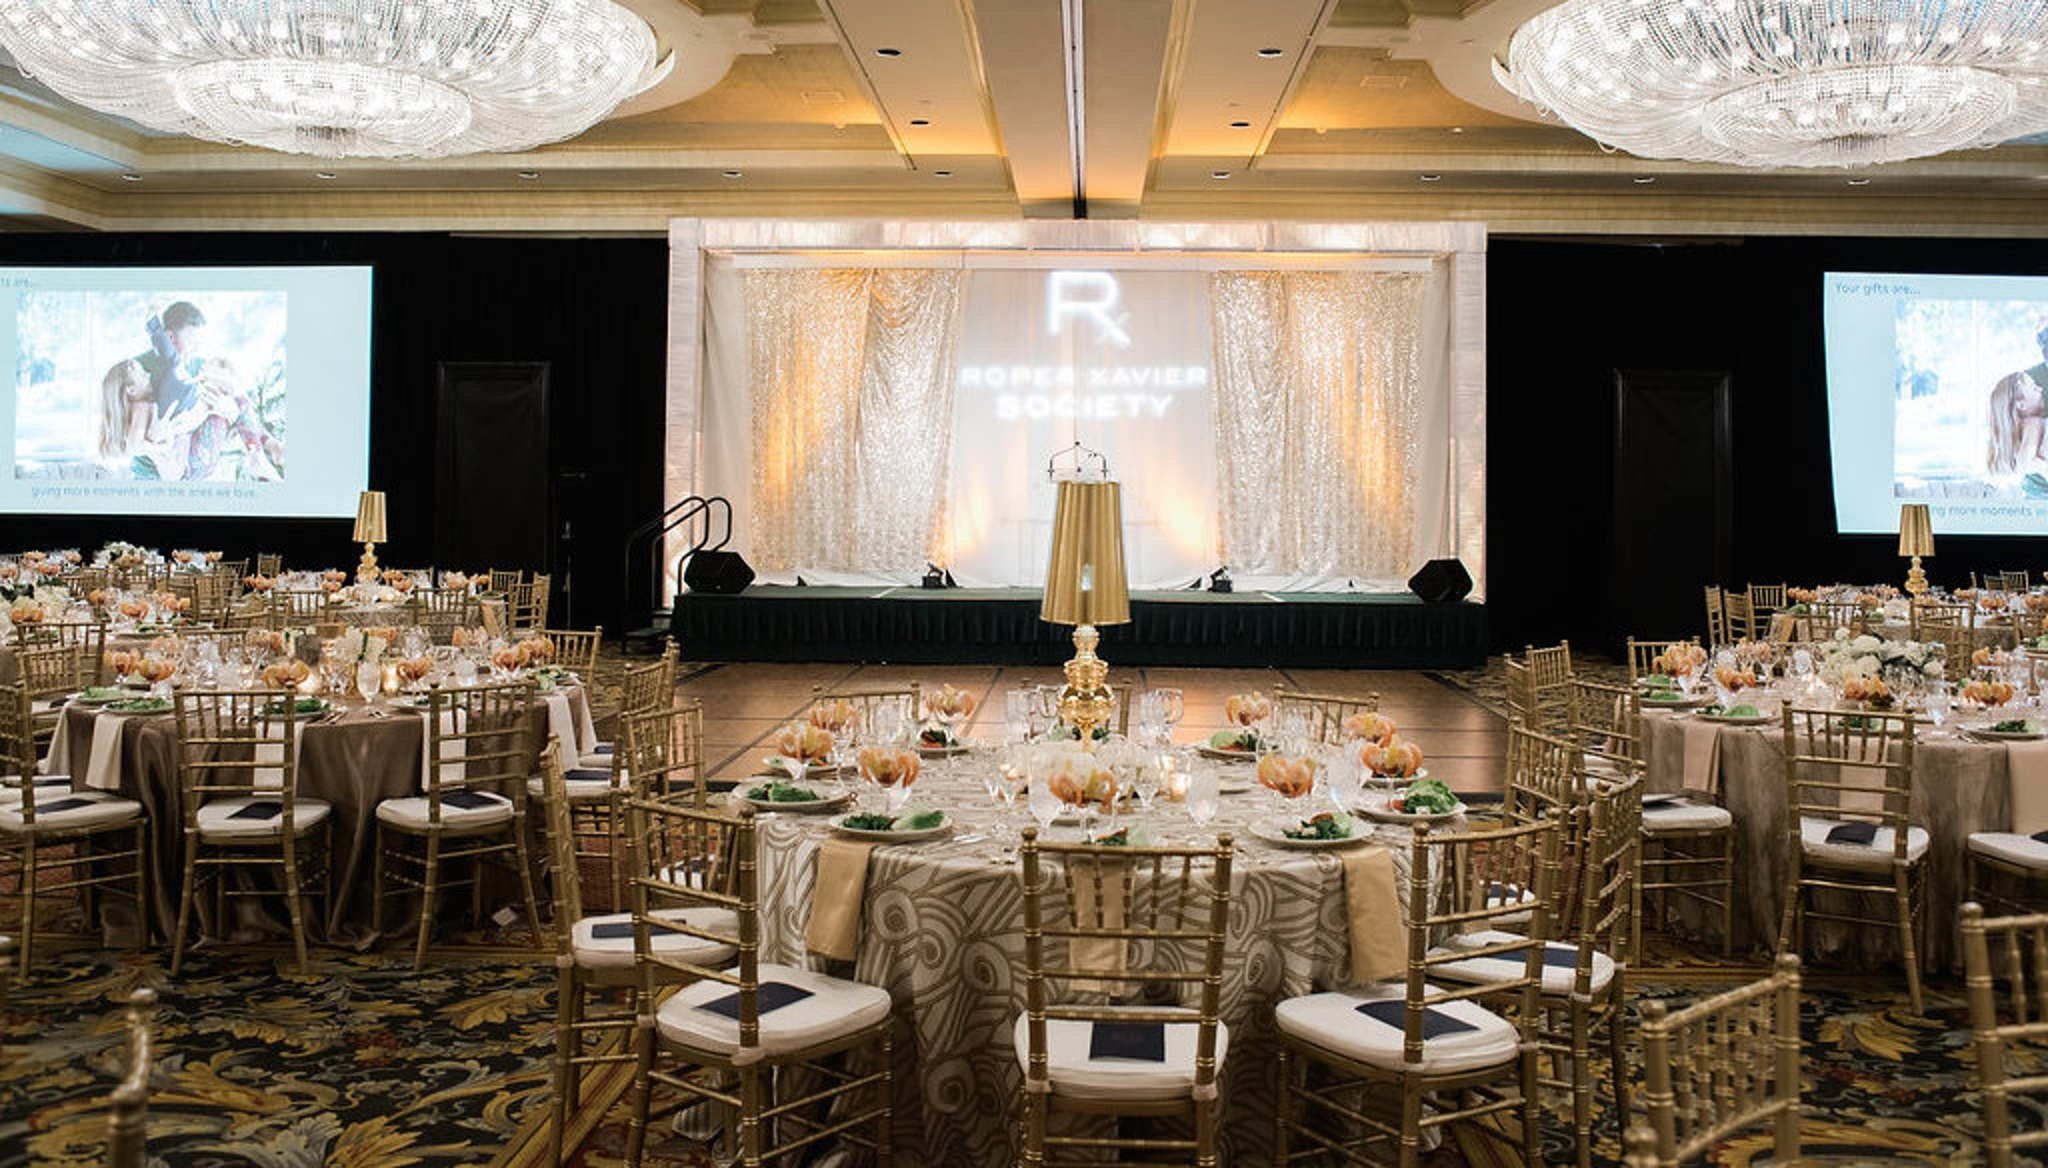 Gold decorated room with large chandeliers at the Belmond Charleston Place